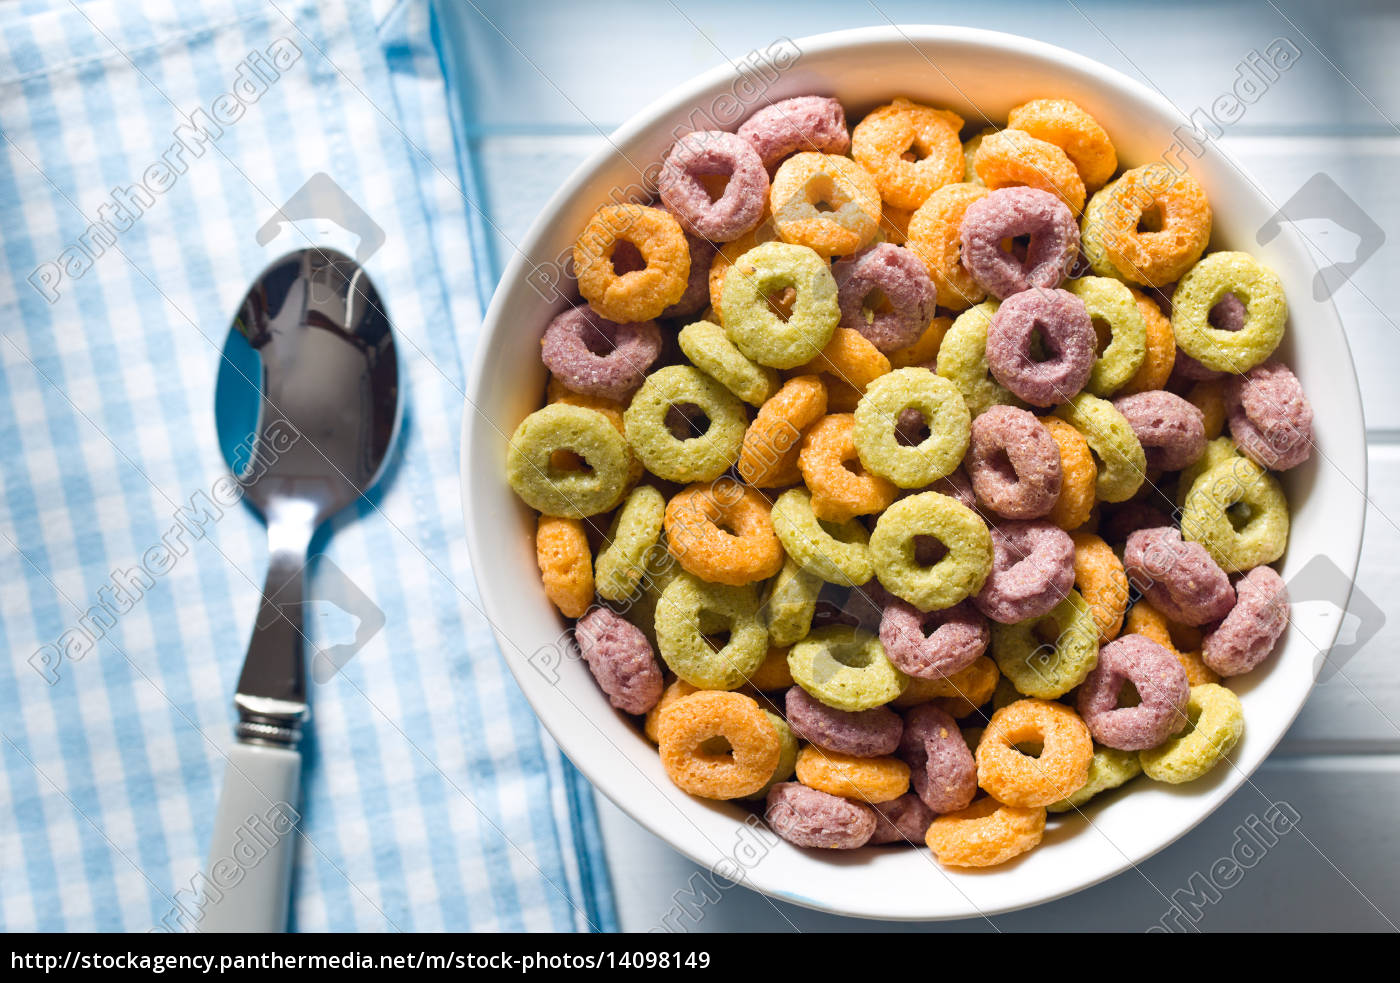 colorful, cereal, rings, in, bowl - 14098149